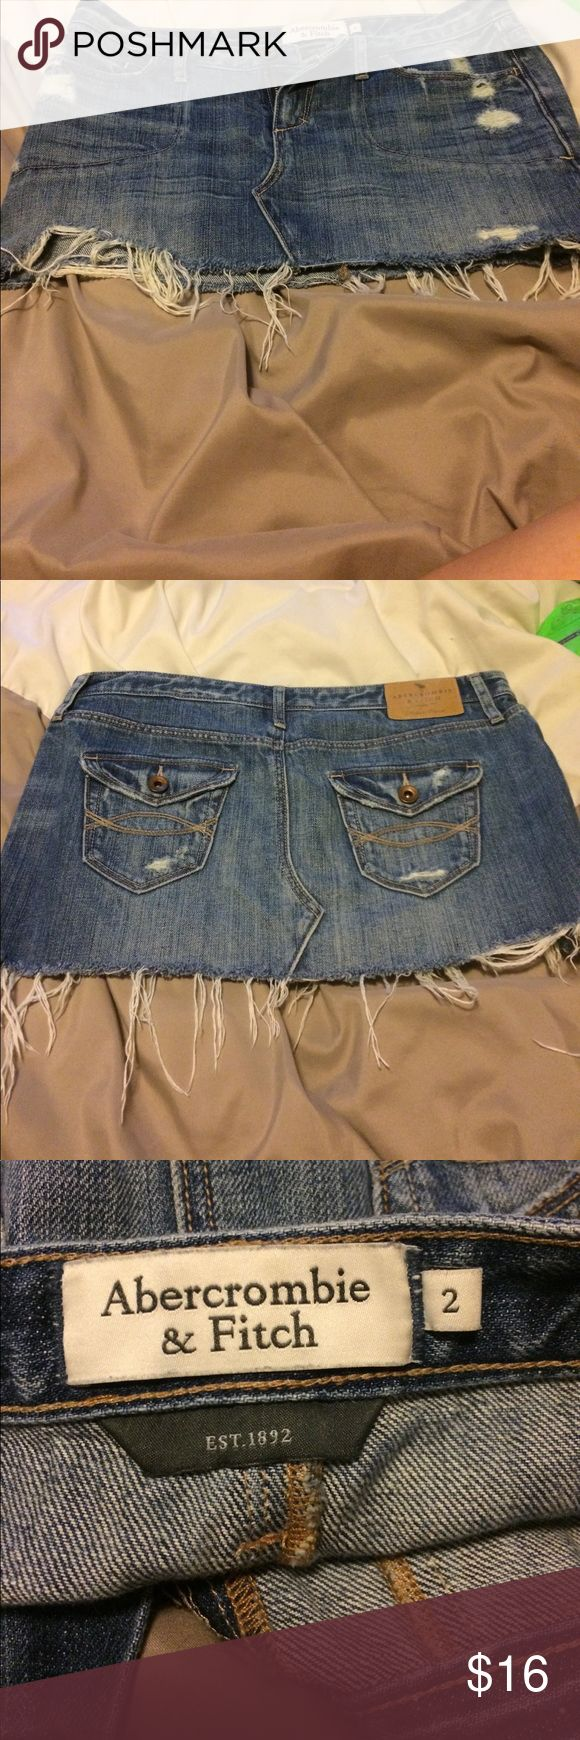 Blue denim skirt Gently worn, great condition Abercrombie & Fitch Skirts Mini